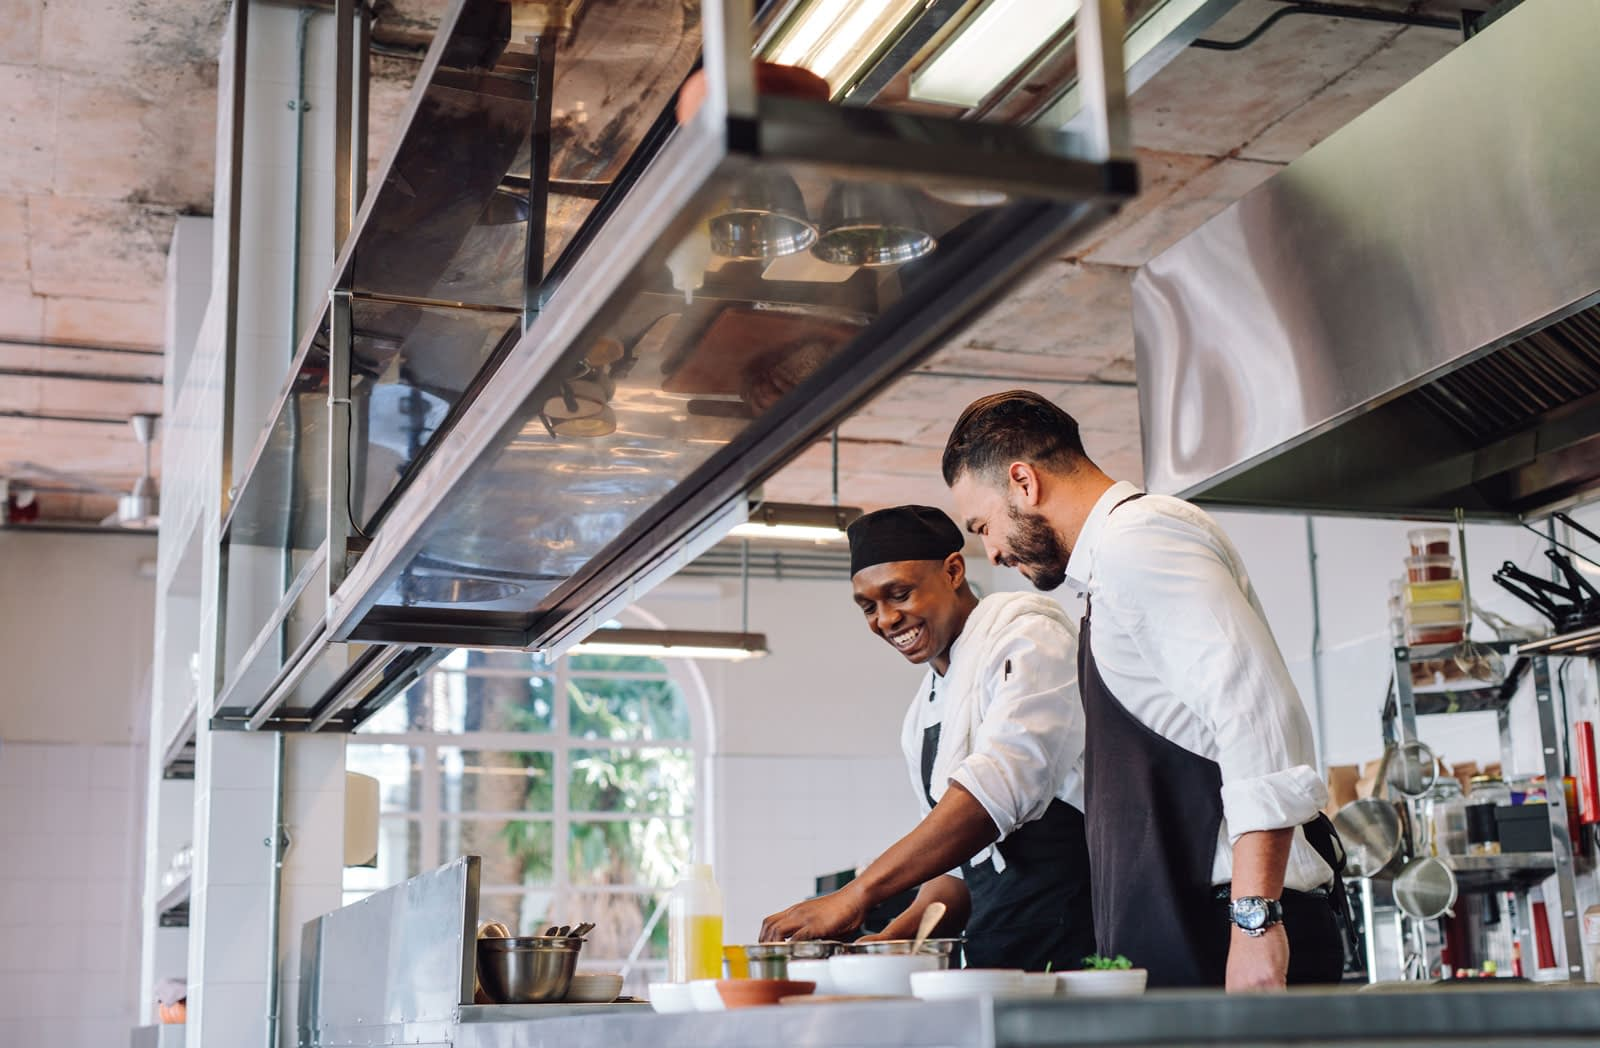 Two male restaurant chefs smiling while preparing a sauce together in modern restaurant kitchen